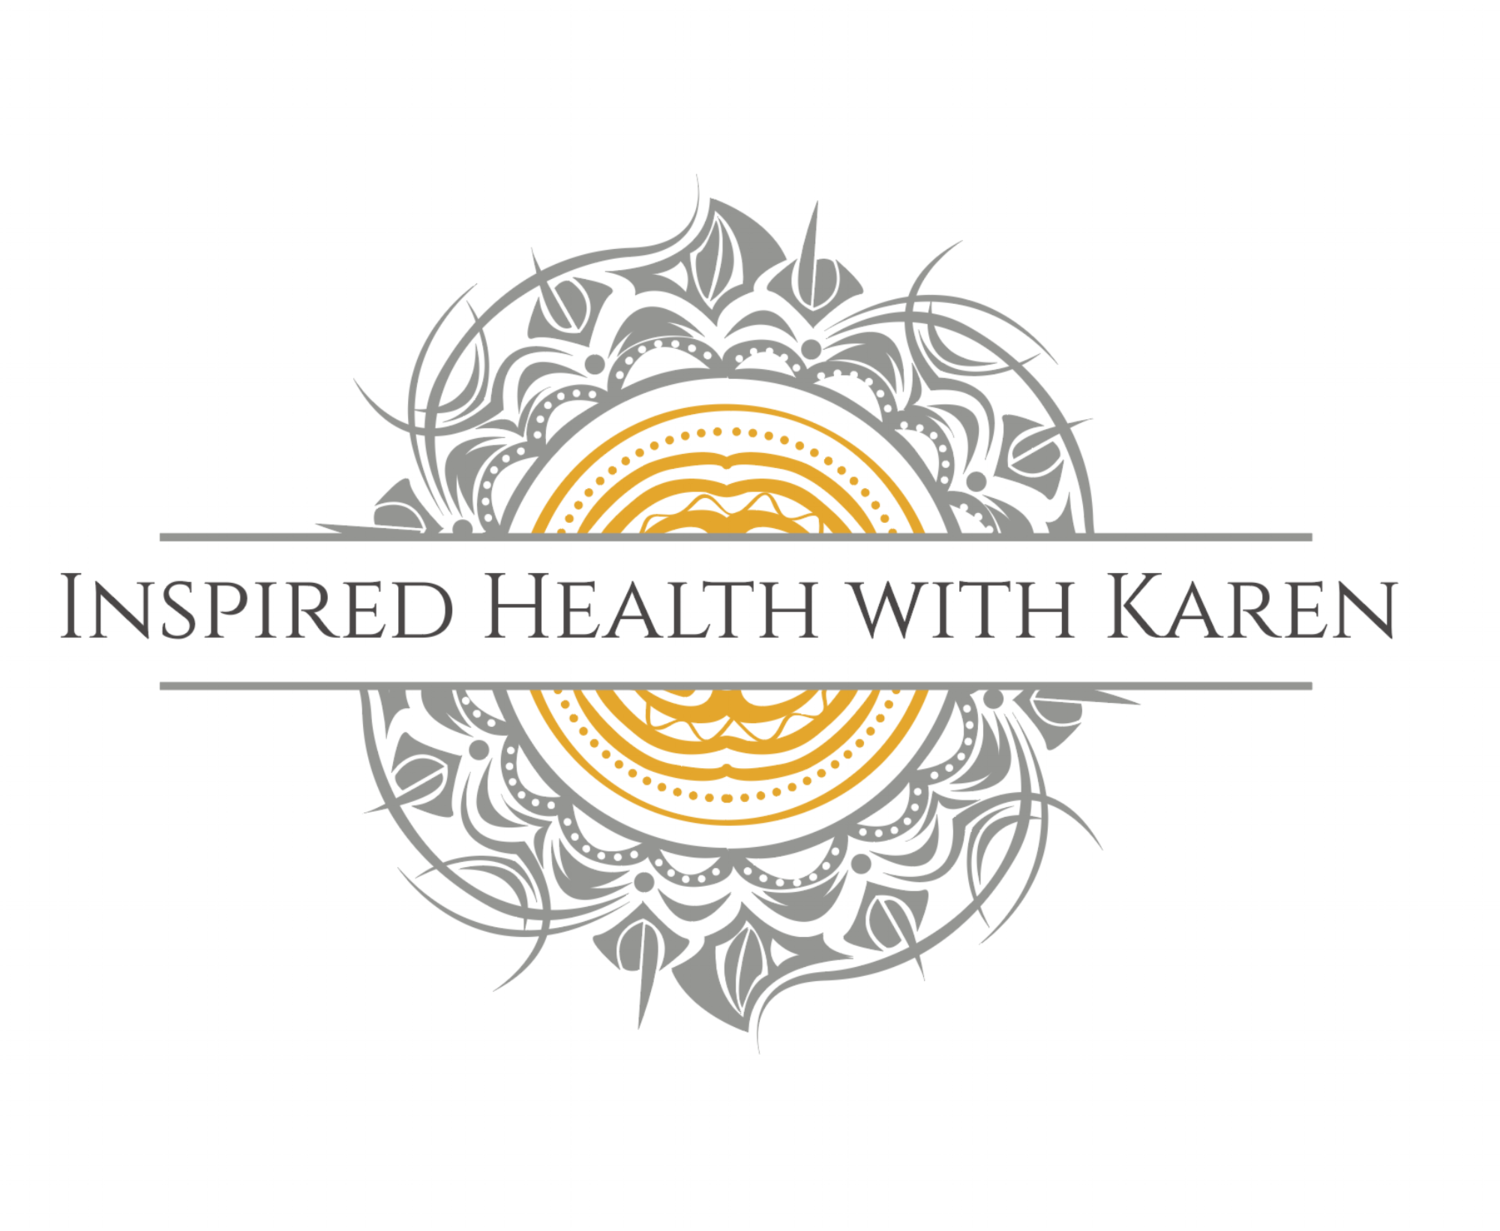 Inspired Health with Karen